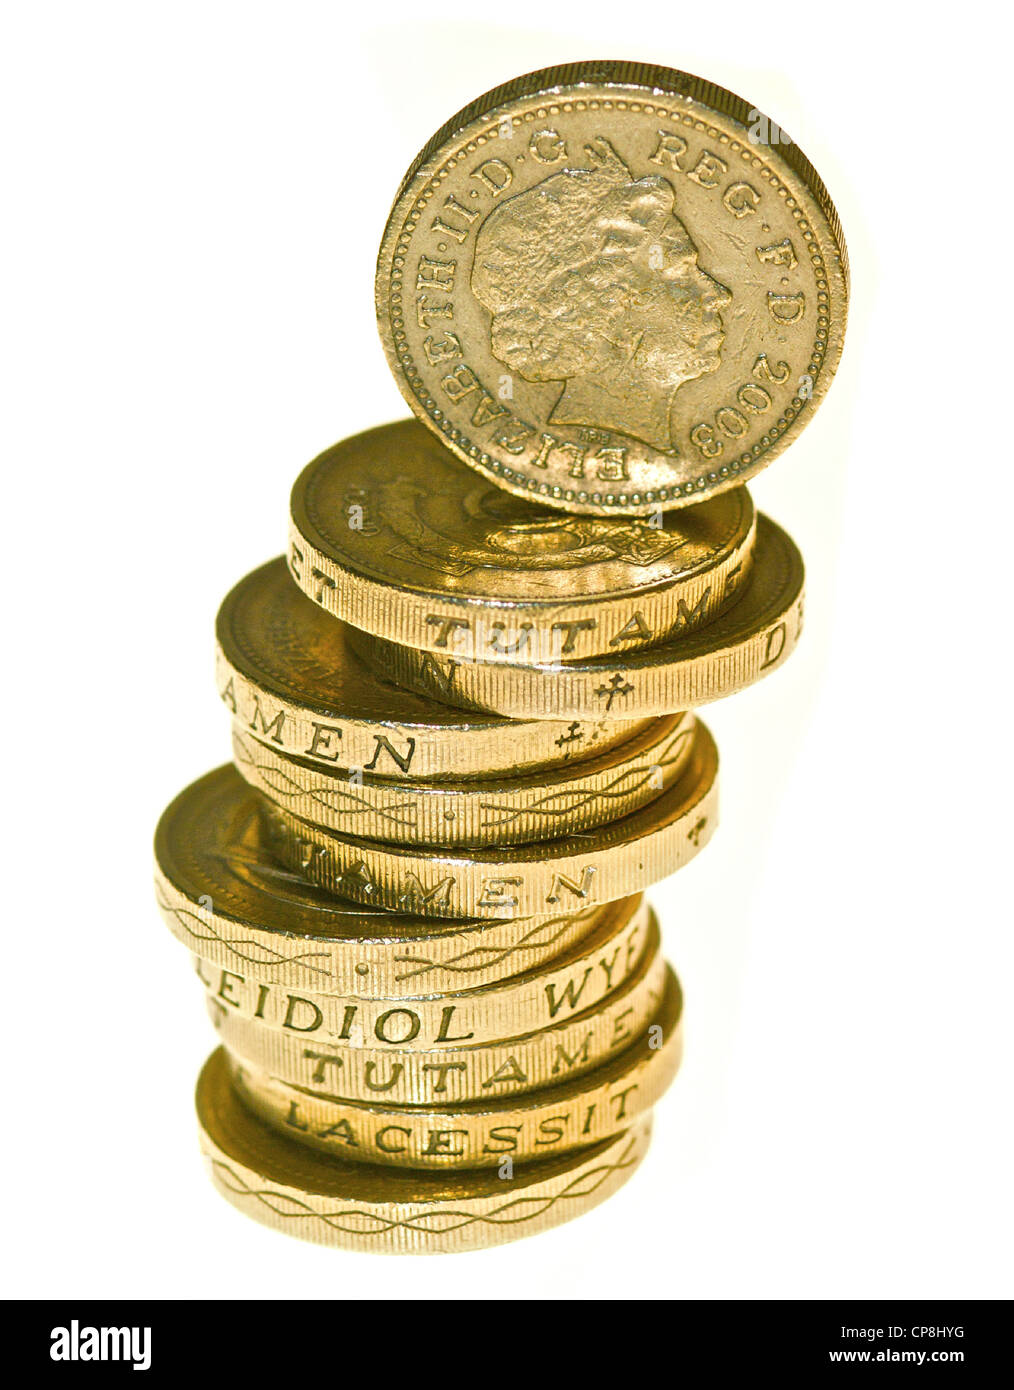 One pound coins in a pile. - Stock Image